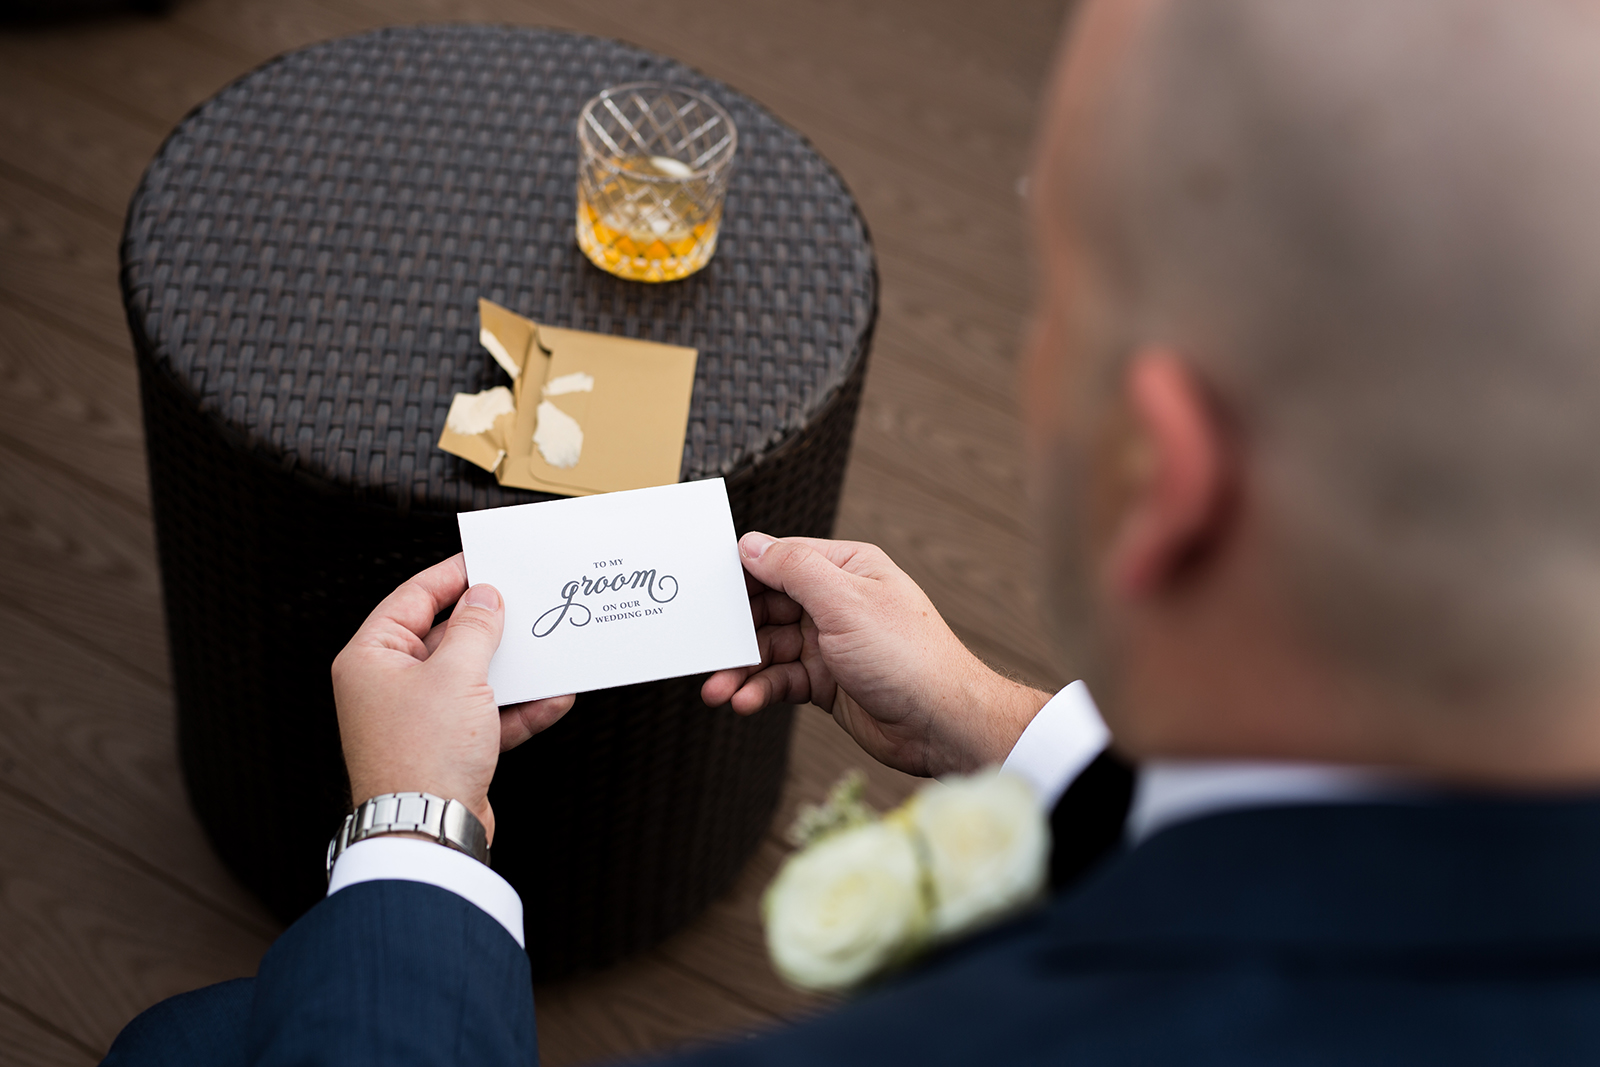 Groom Opening Card from Bride